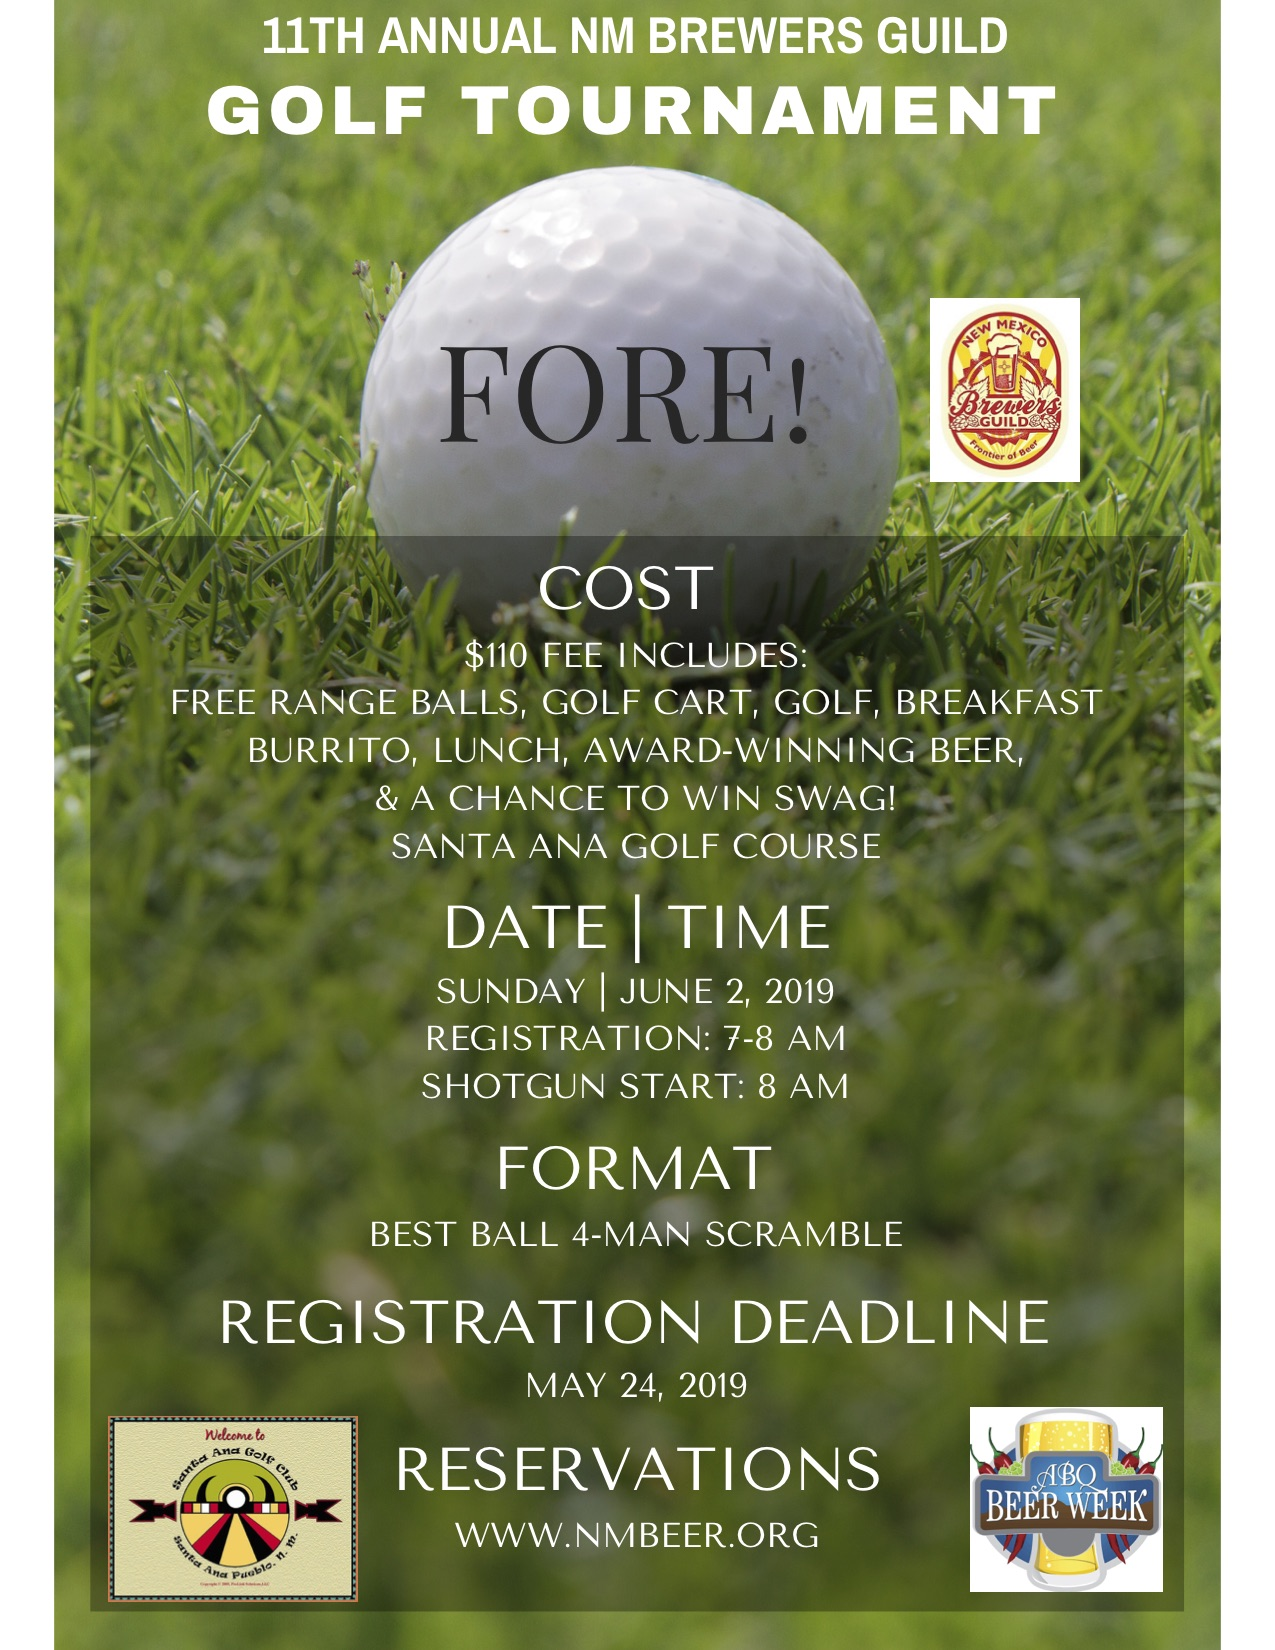 Golf Tournament Flyer 2019.jpg.jpeg